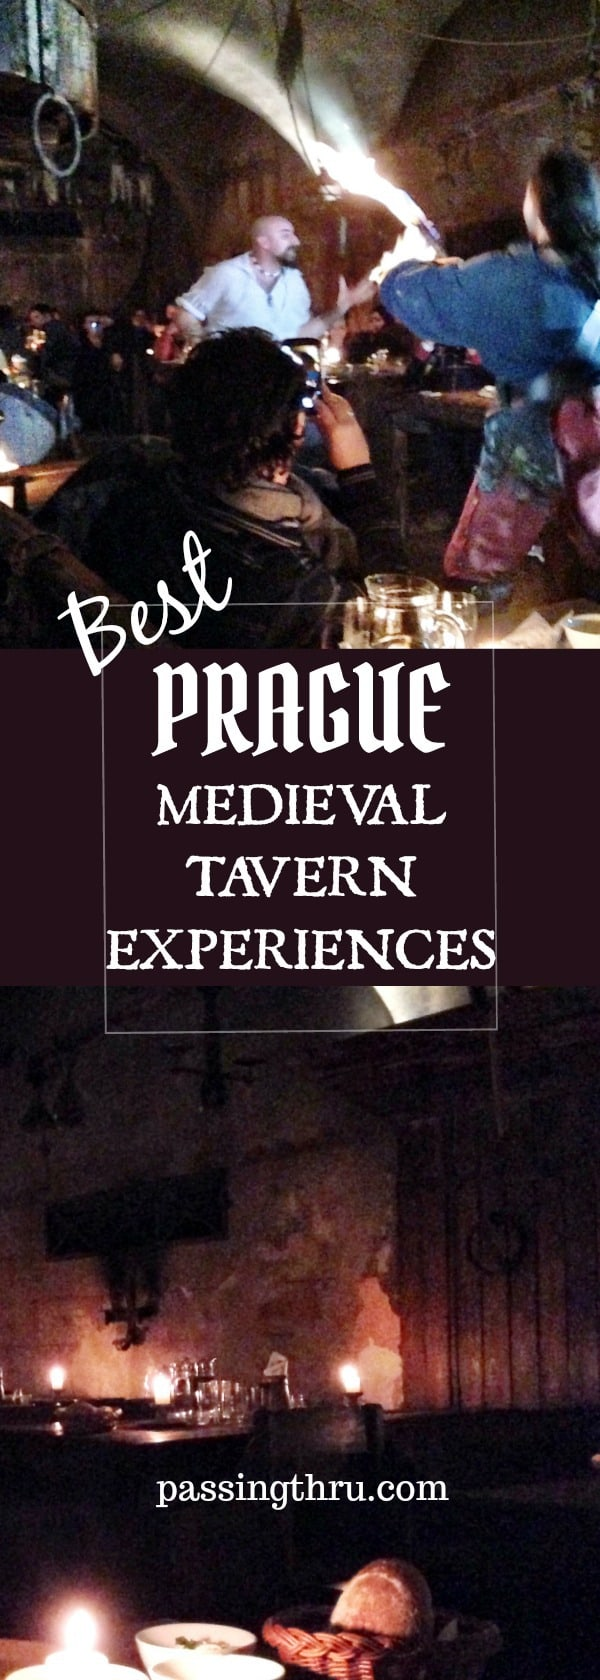 Top 3 Prague Medieval Tavern Experiences | Passing Thru - For the